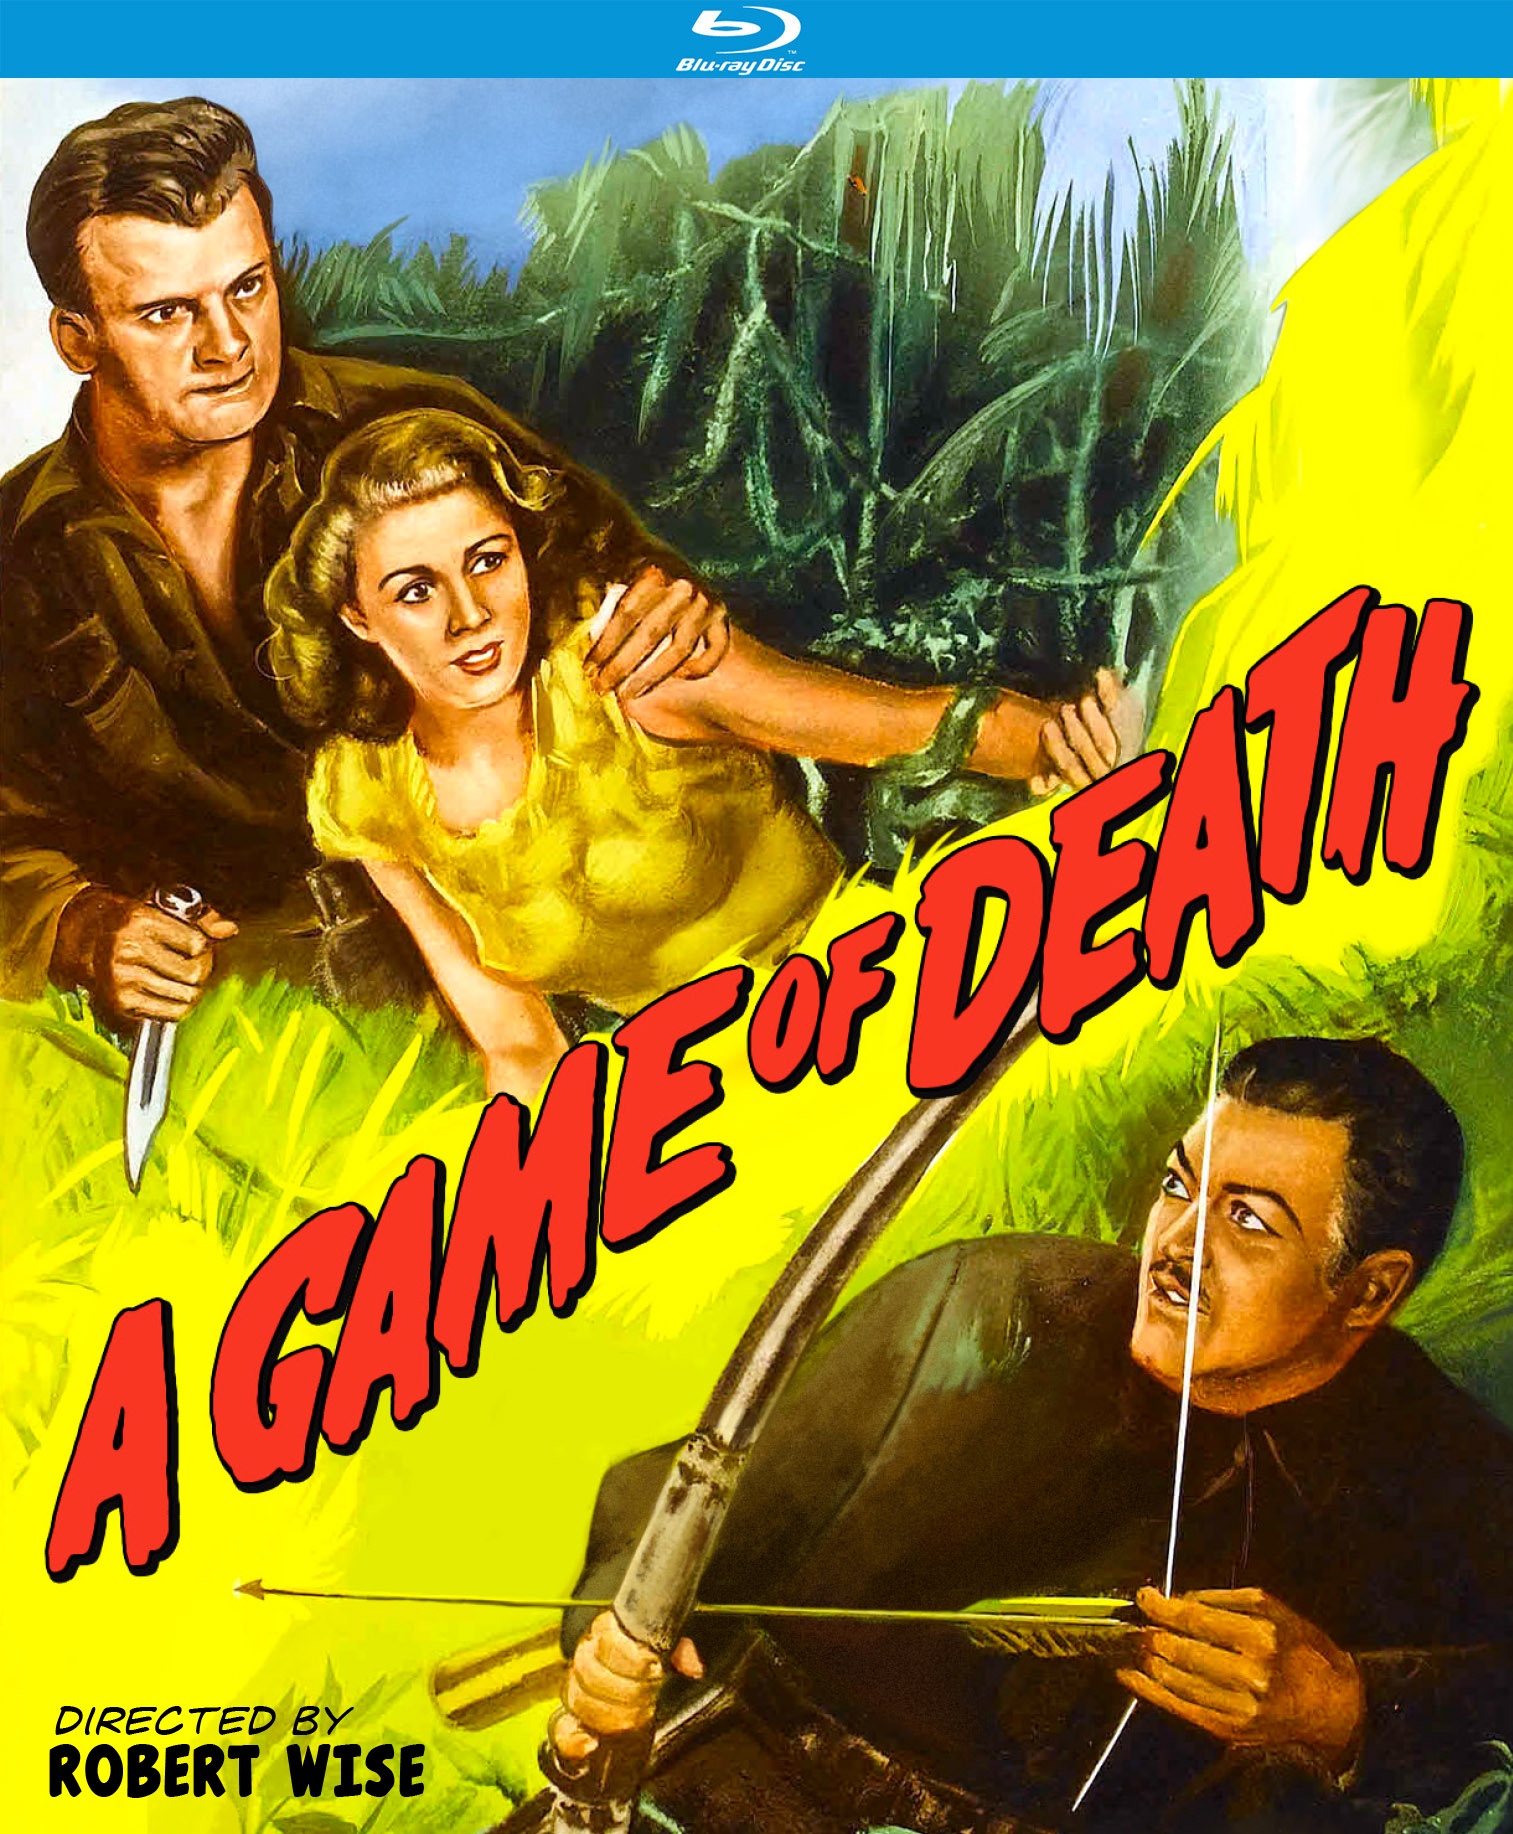 A Game of Death (Blu-ray) - Kino Lorber Home Video